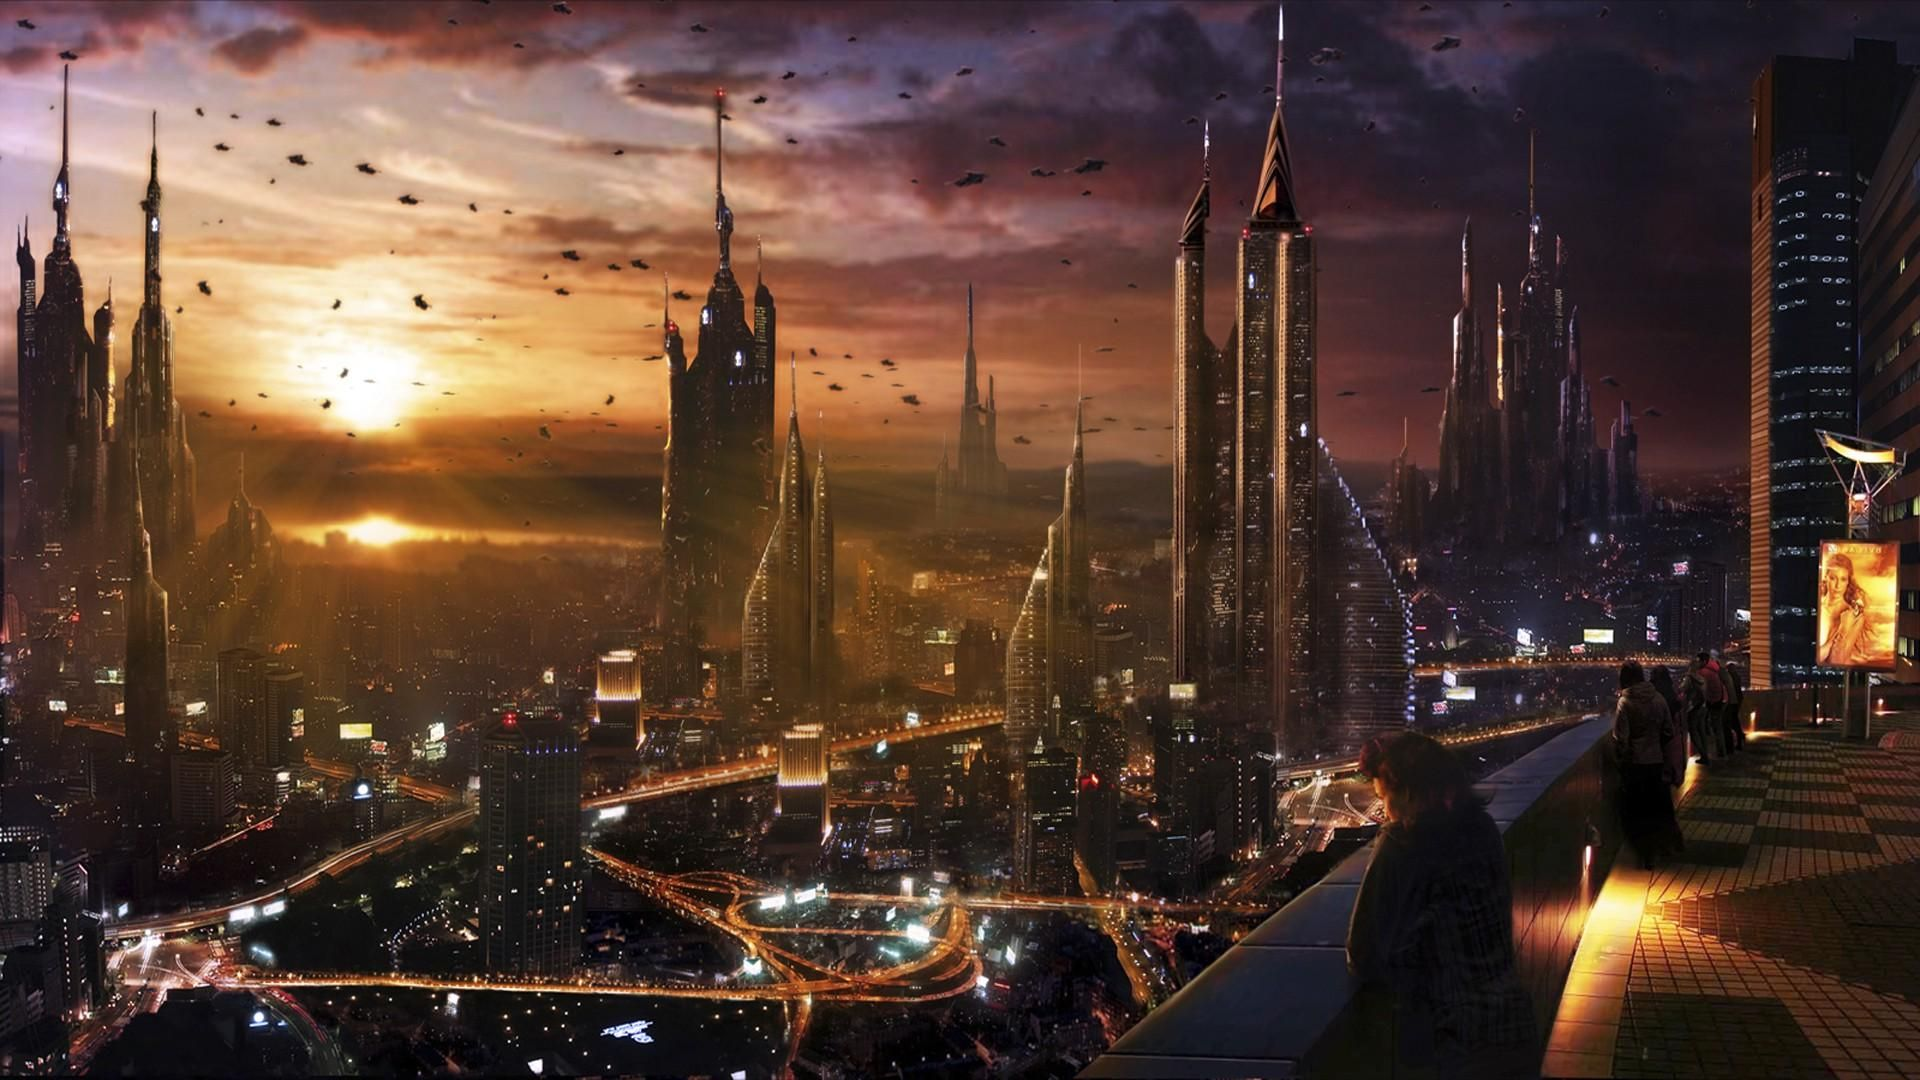 Futuristic City Hd Wallpaper 1920x1080 Id 35284 Sci Fi Wallpaper Futuristic City Steampunk City